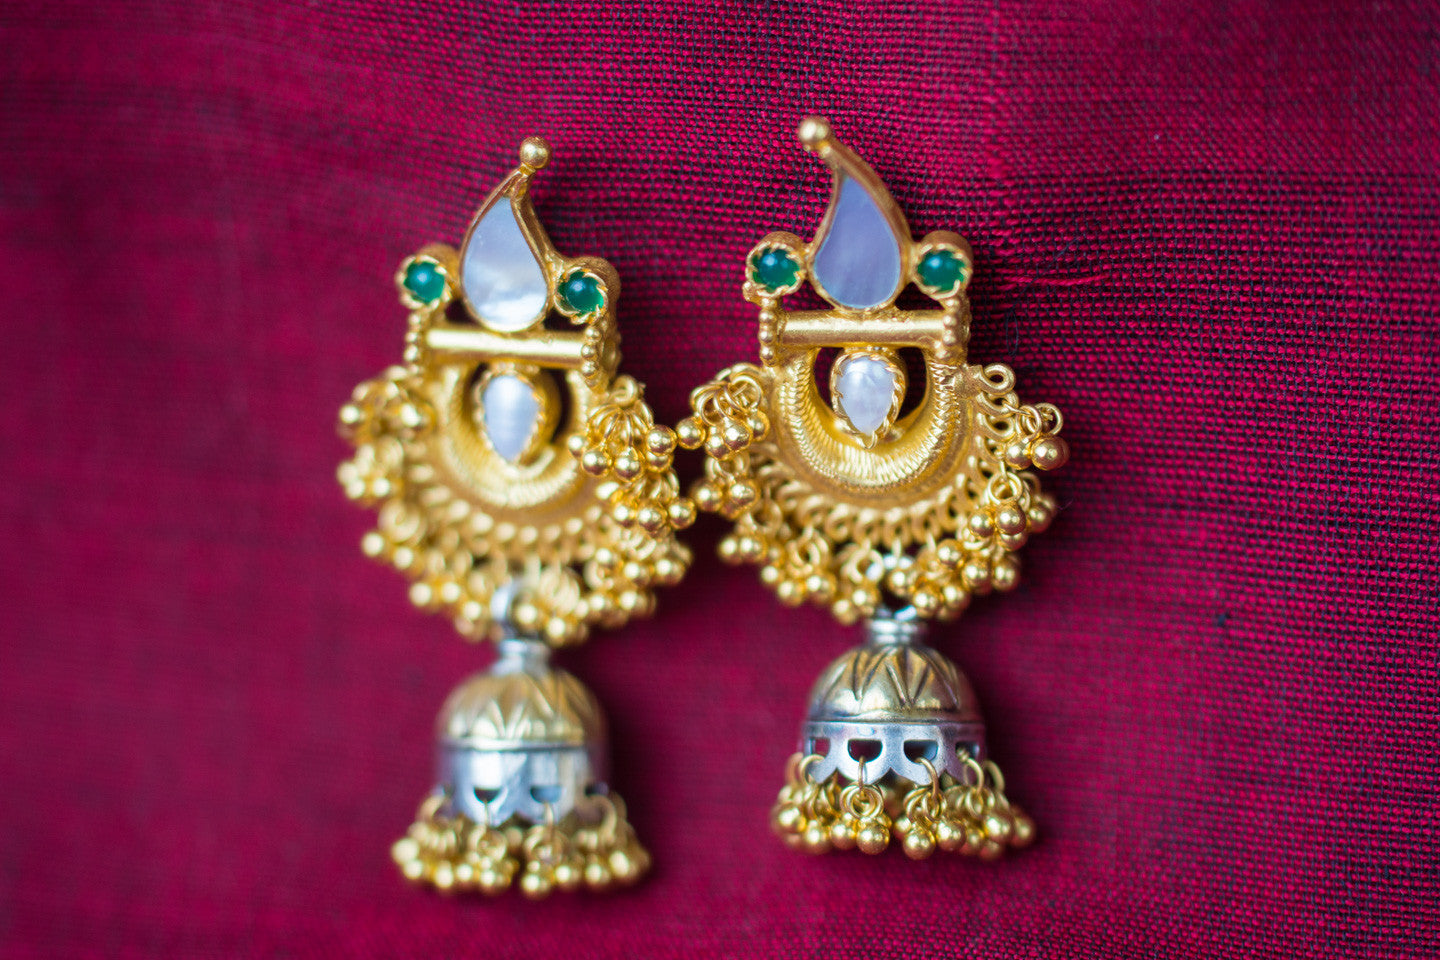 20a444-silver-gold-plated-amrapali-earrings-pearl-stone-two-tone-jhumka-alternate-view-3